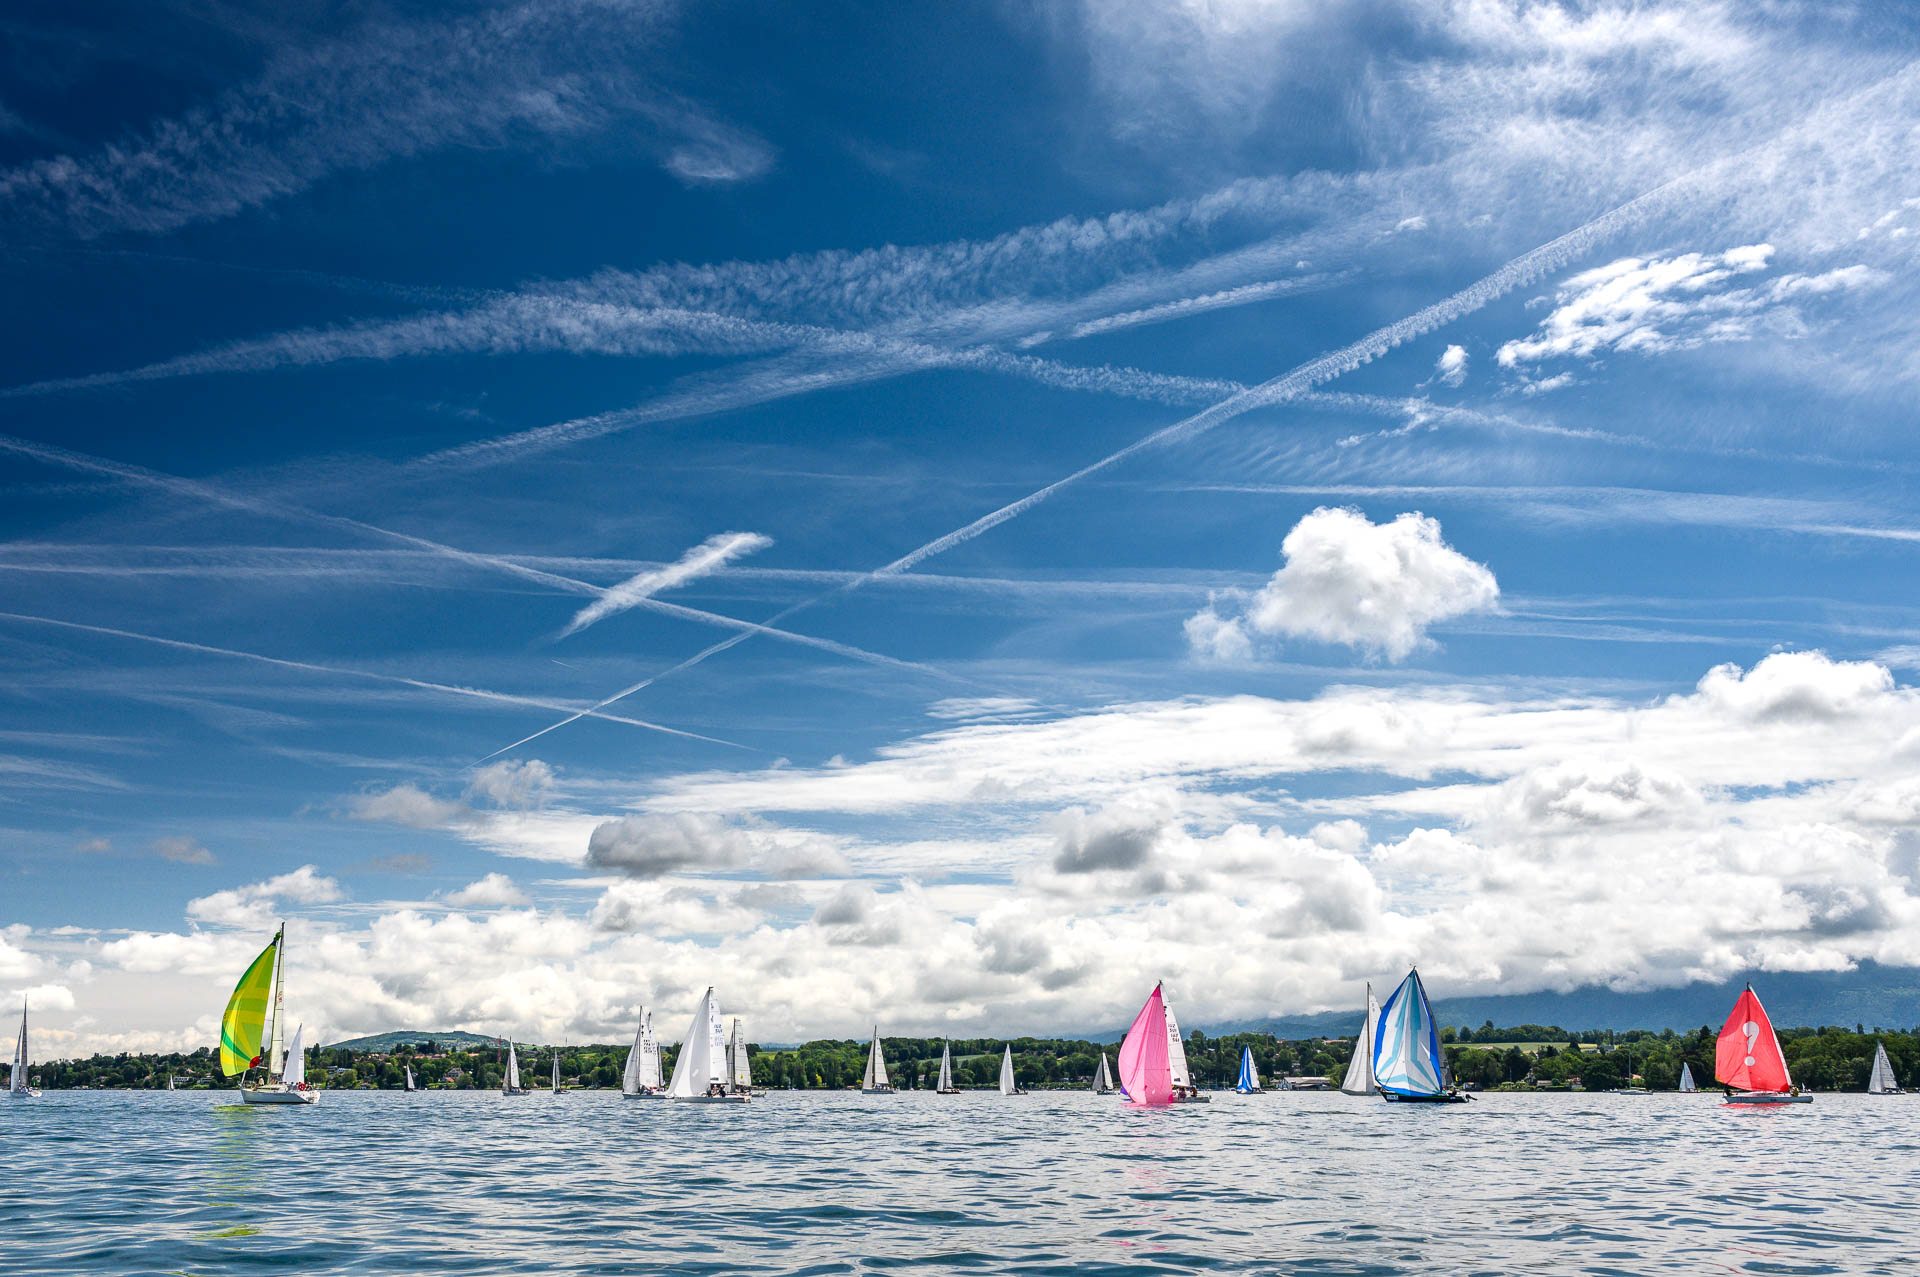 summer events geneva, sport events geneva, sailing geneva, summer in geneva, sporting events, geneva city guide